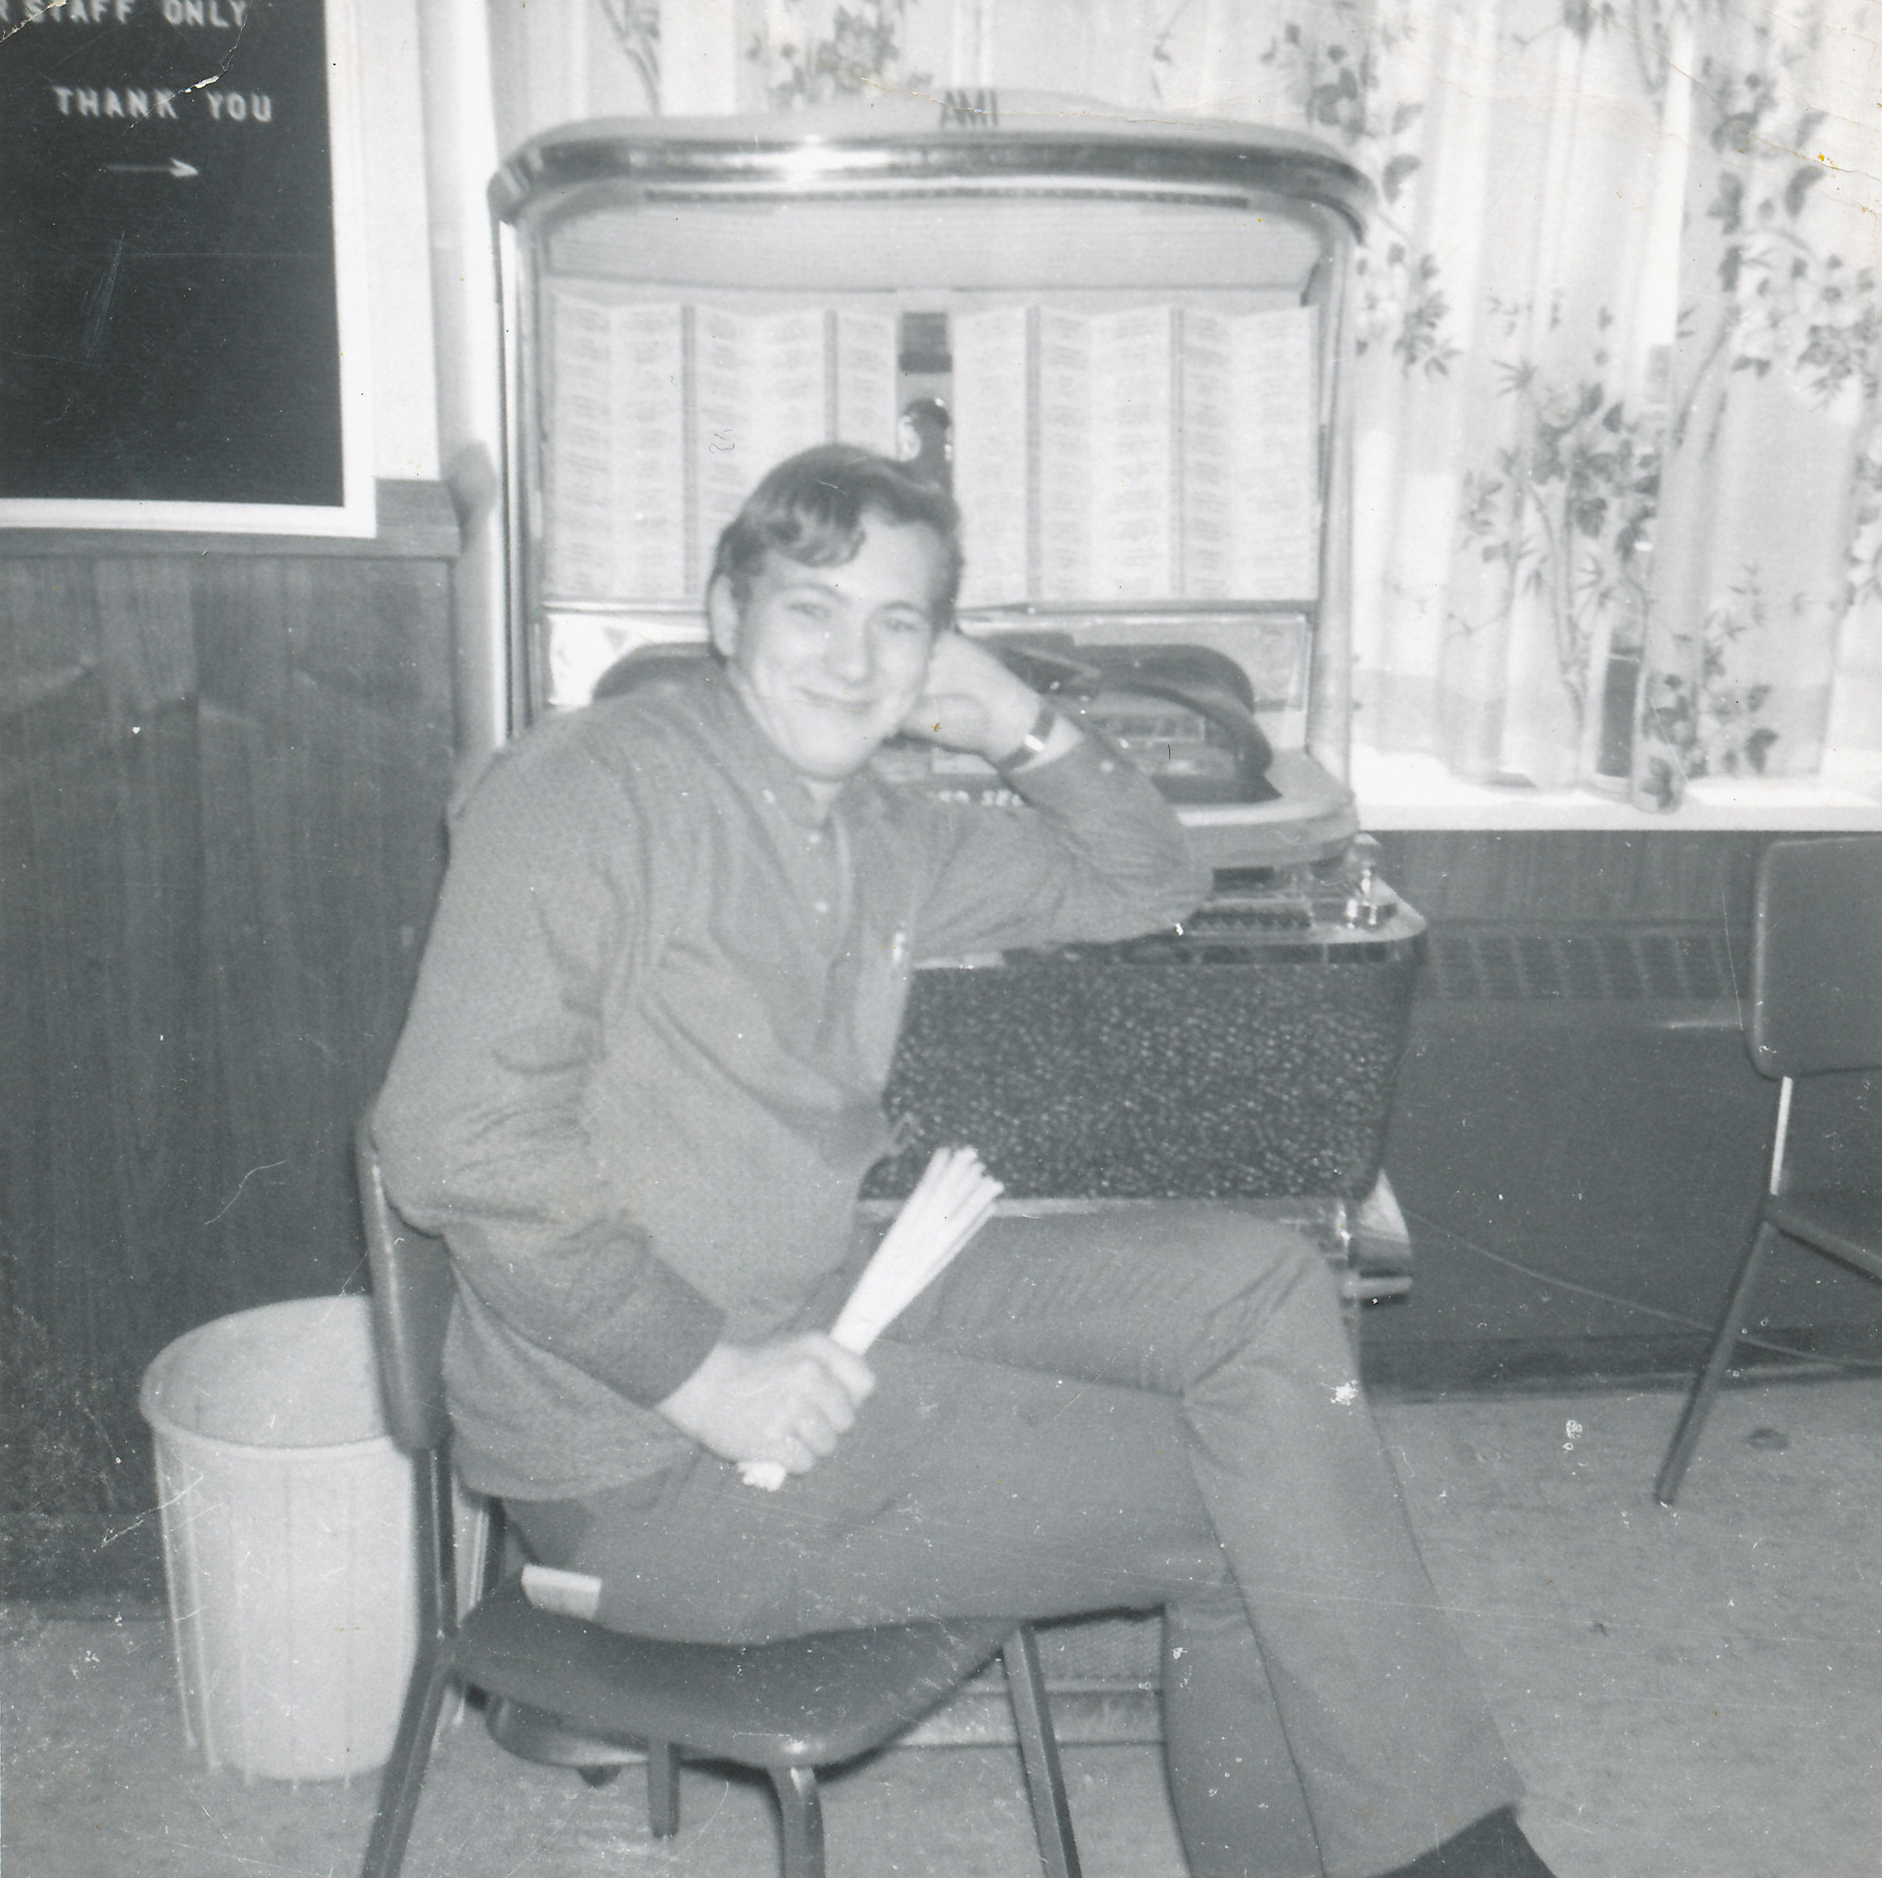 young man sitting on chair in front of jukebook